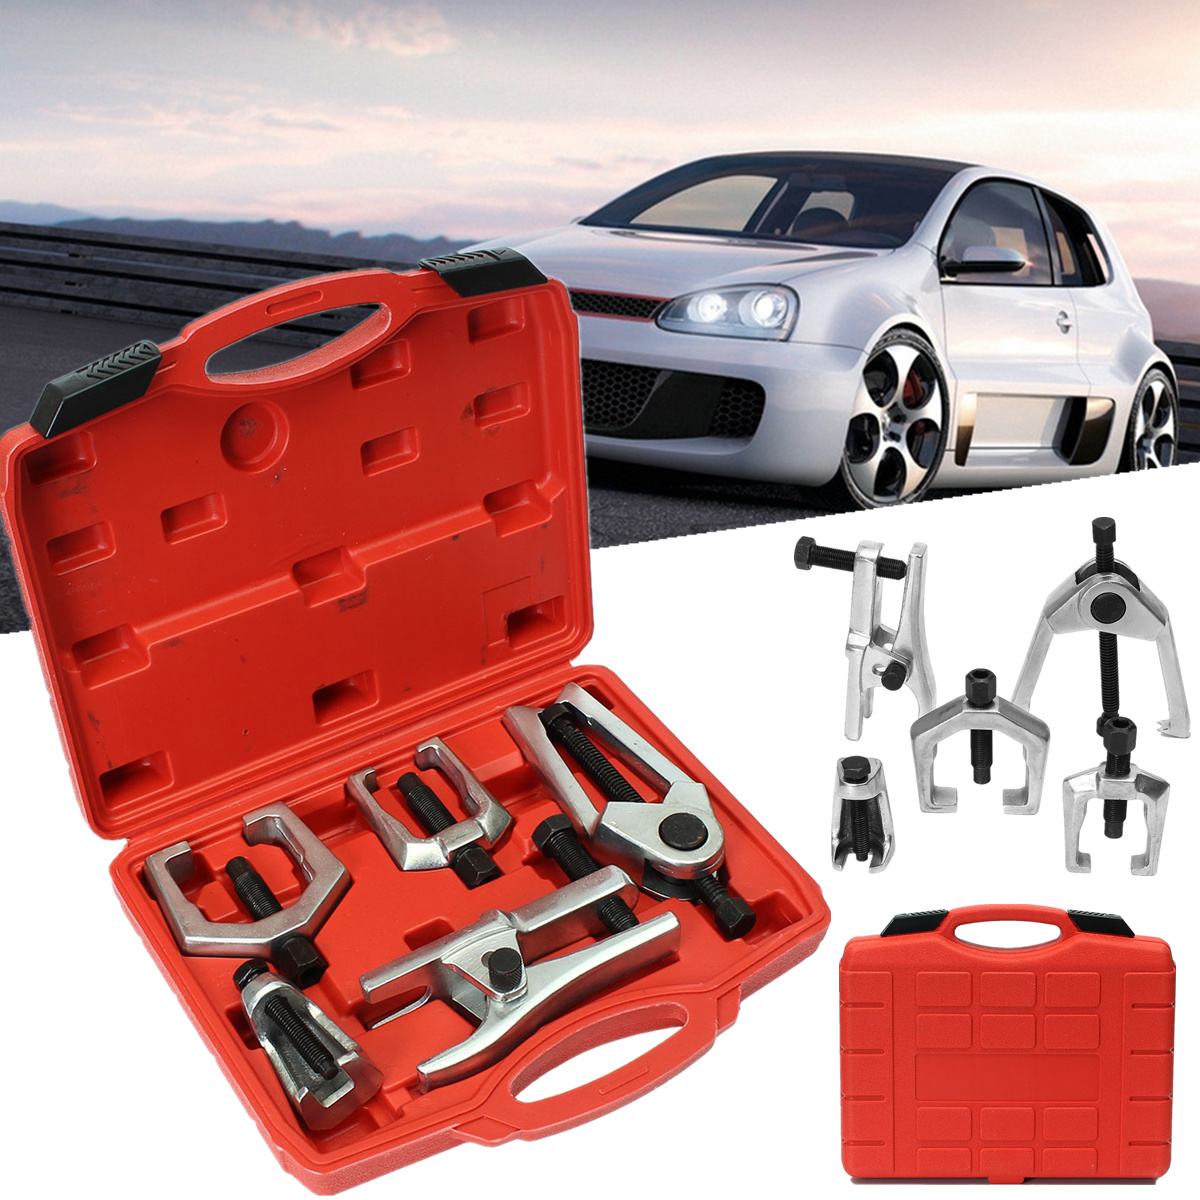 цена на 5 in 1 Front End Service Tool Kit Ball Joint Tie Rod Pitman Arm Puller Removers Press Type Ball Joint Separator Car Repair Tools